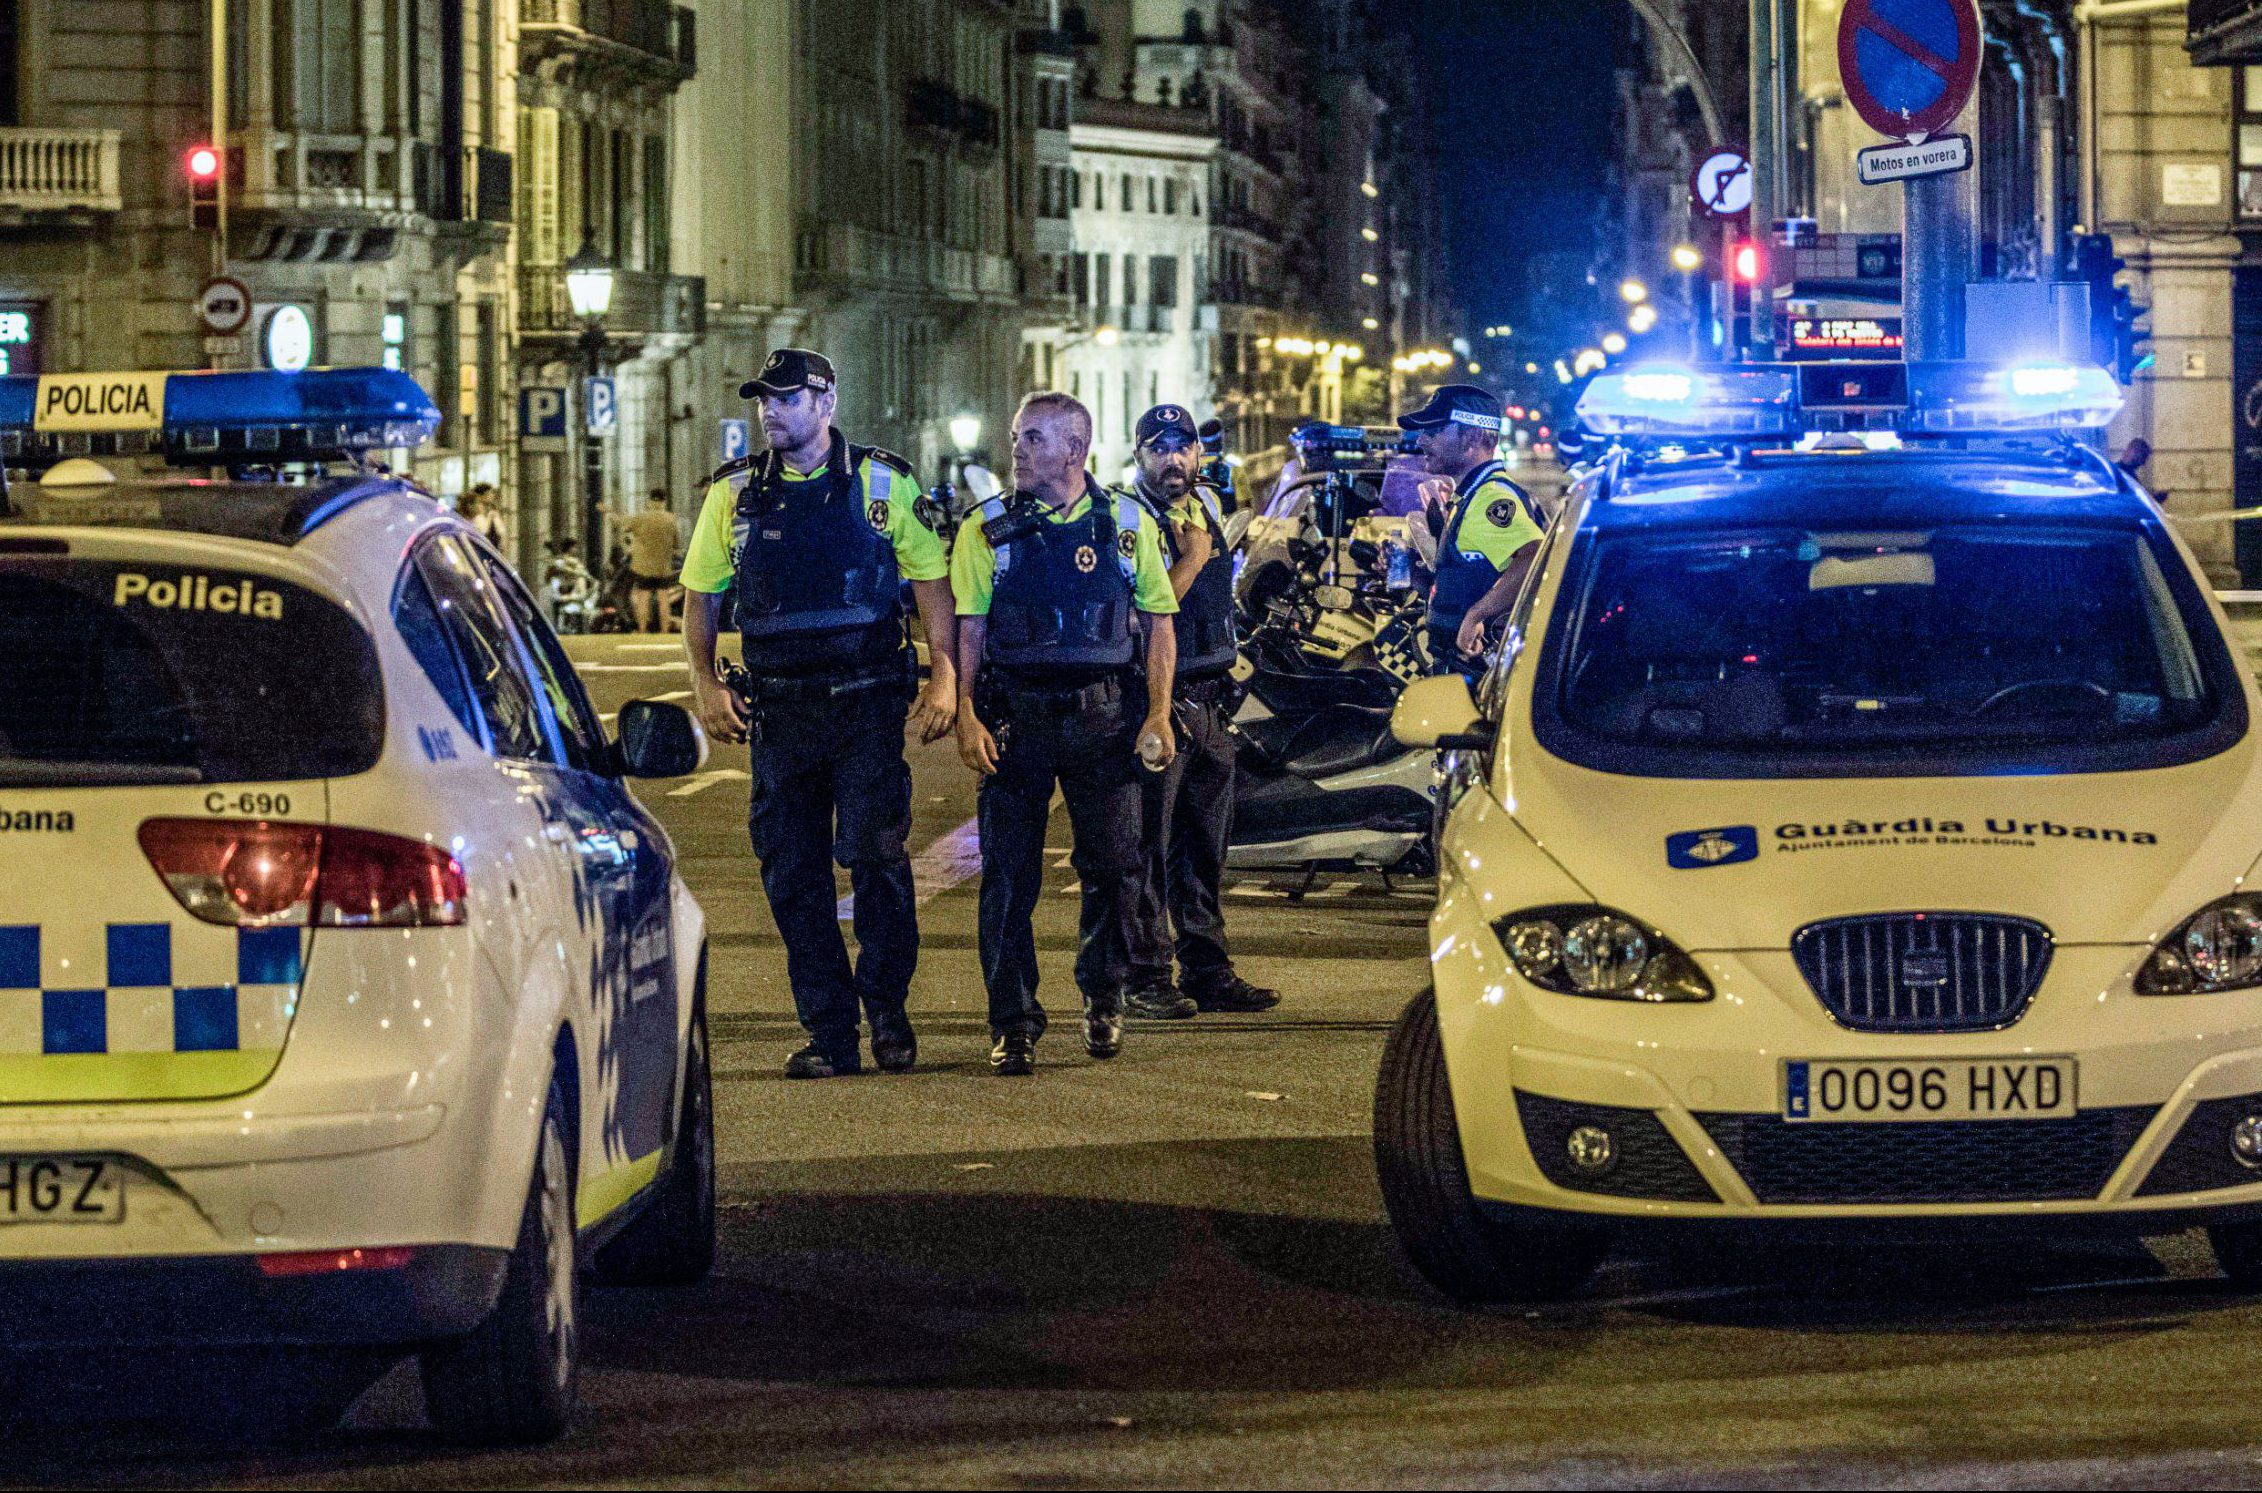 Barcelona terror cell 'dismantled' – but one suspect is still on the run